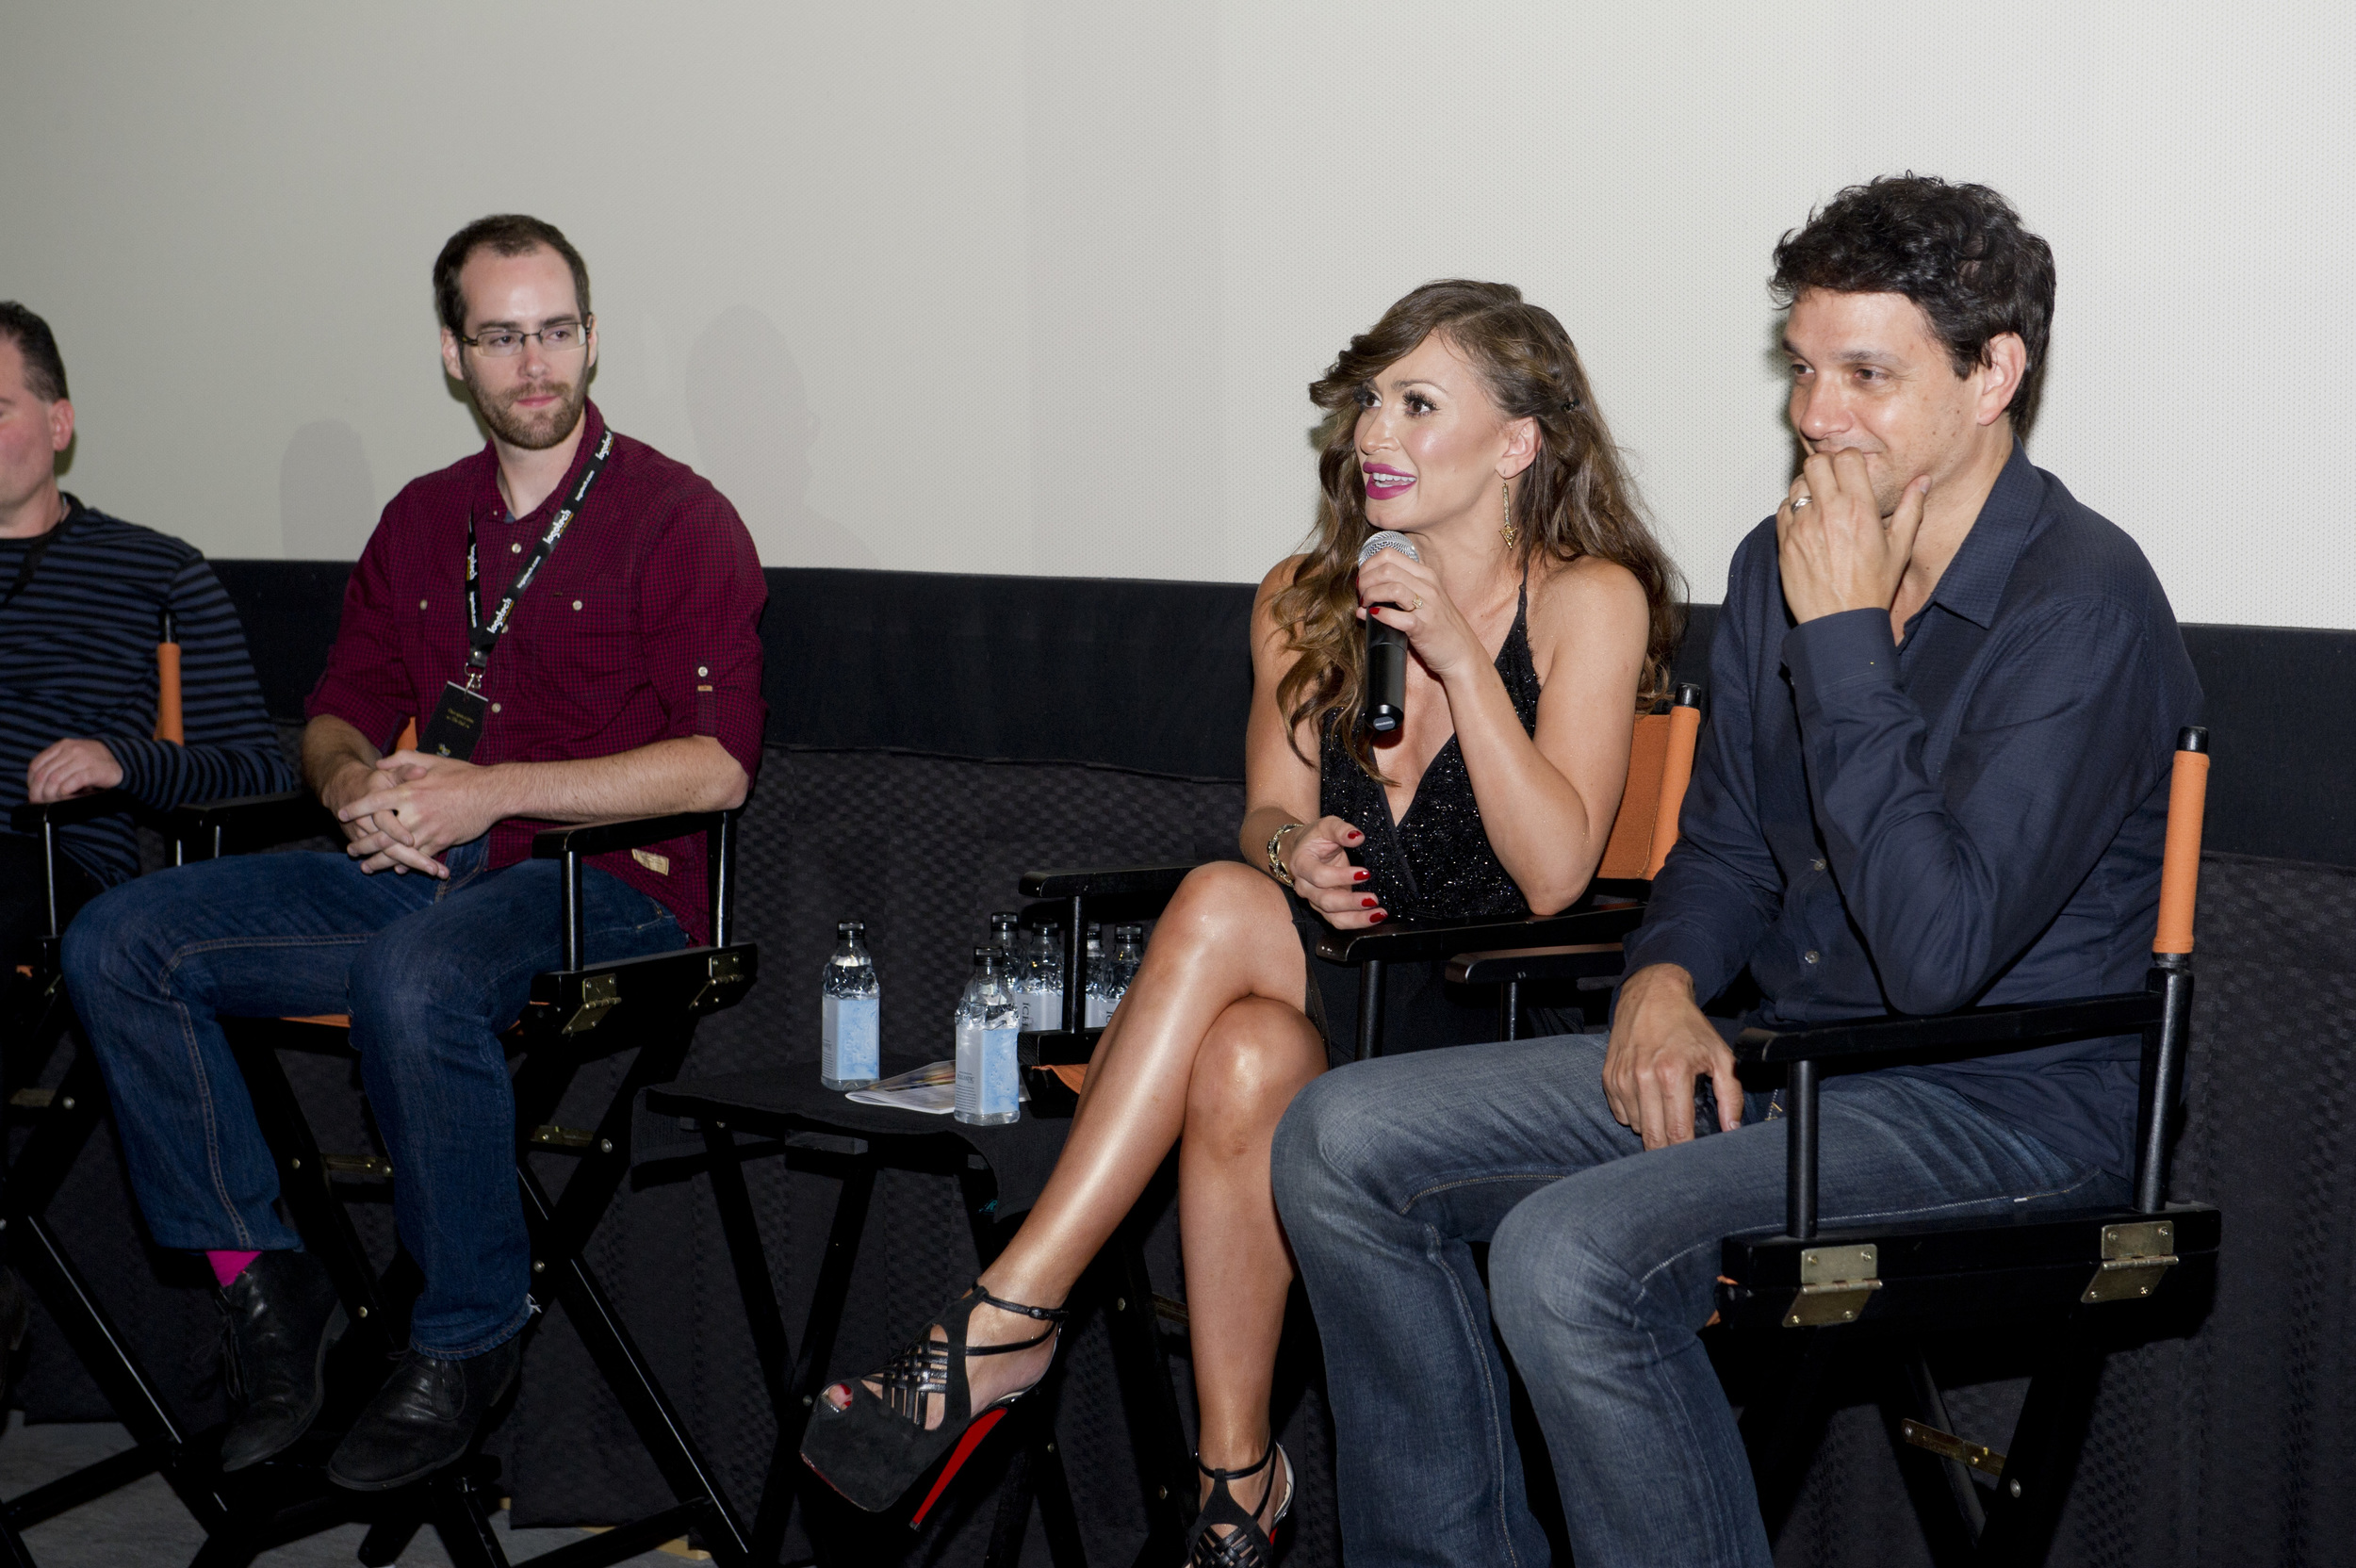 The Karate Kid  's Ralph Macchio & Dancing with the Stars's Karina Smirnoff talk about Mr. Macchio's short film Across Grace Alley